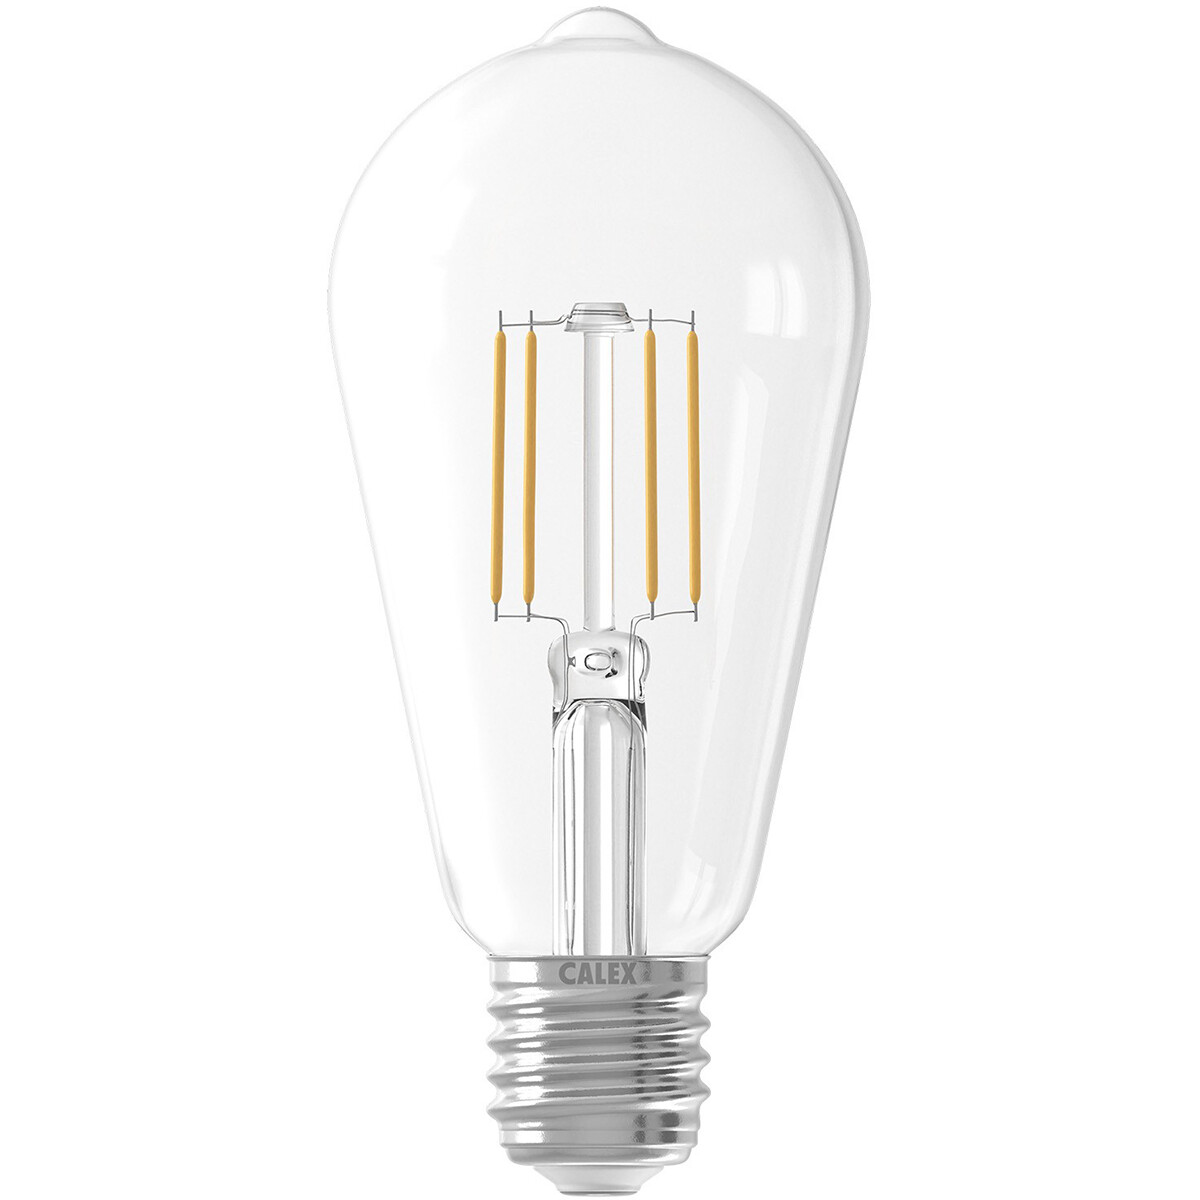 CALEX - LED Lamp - Filament ST64 - E27 Fitting - 6W - Warm Wit 2700K - Transparant Helder